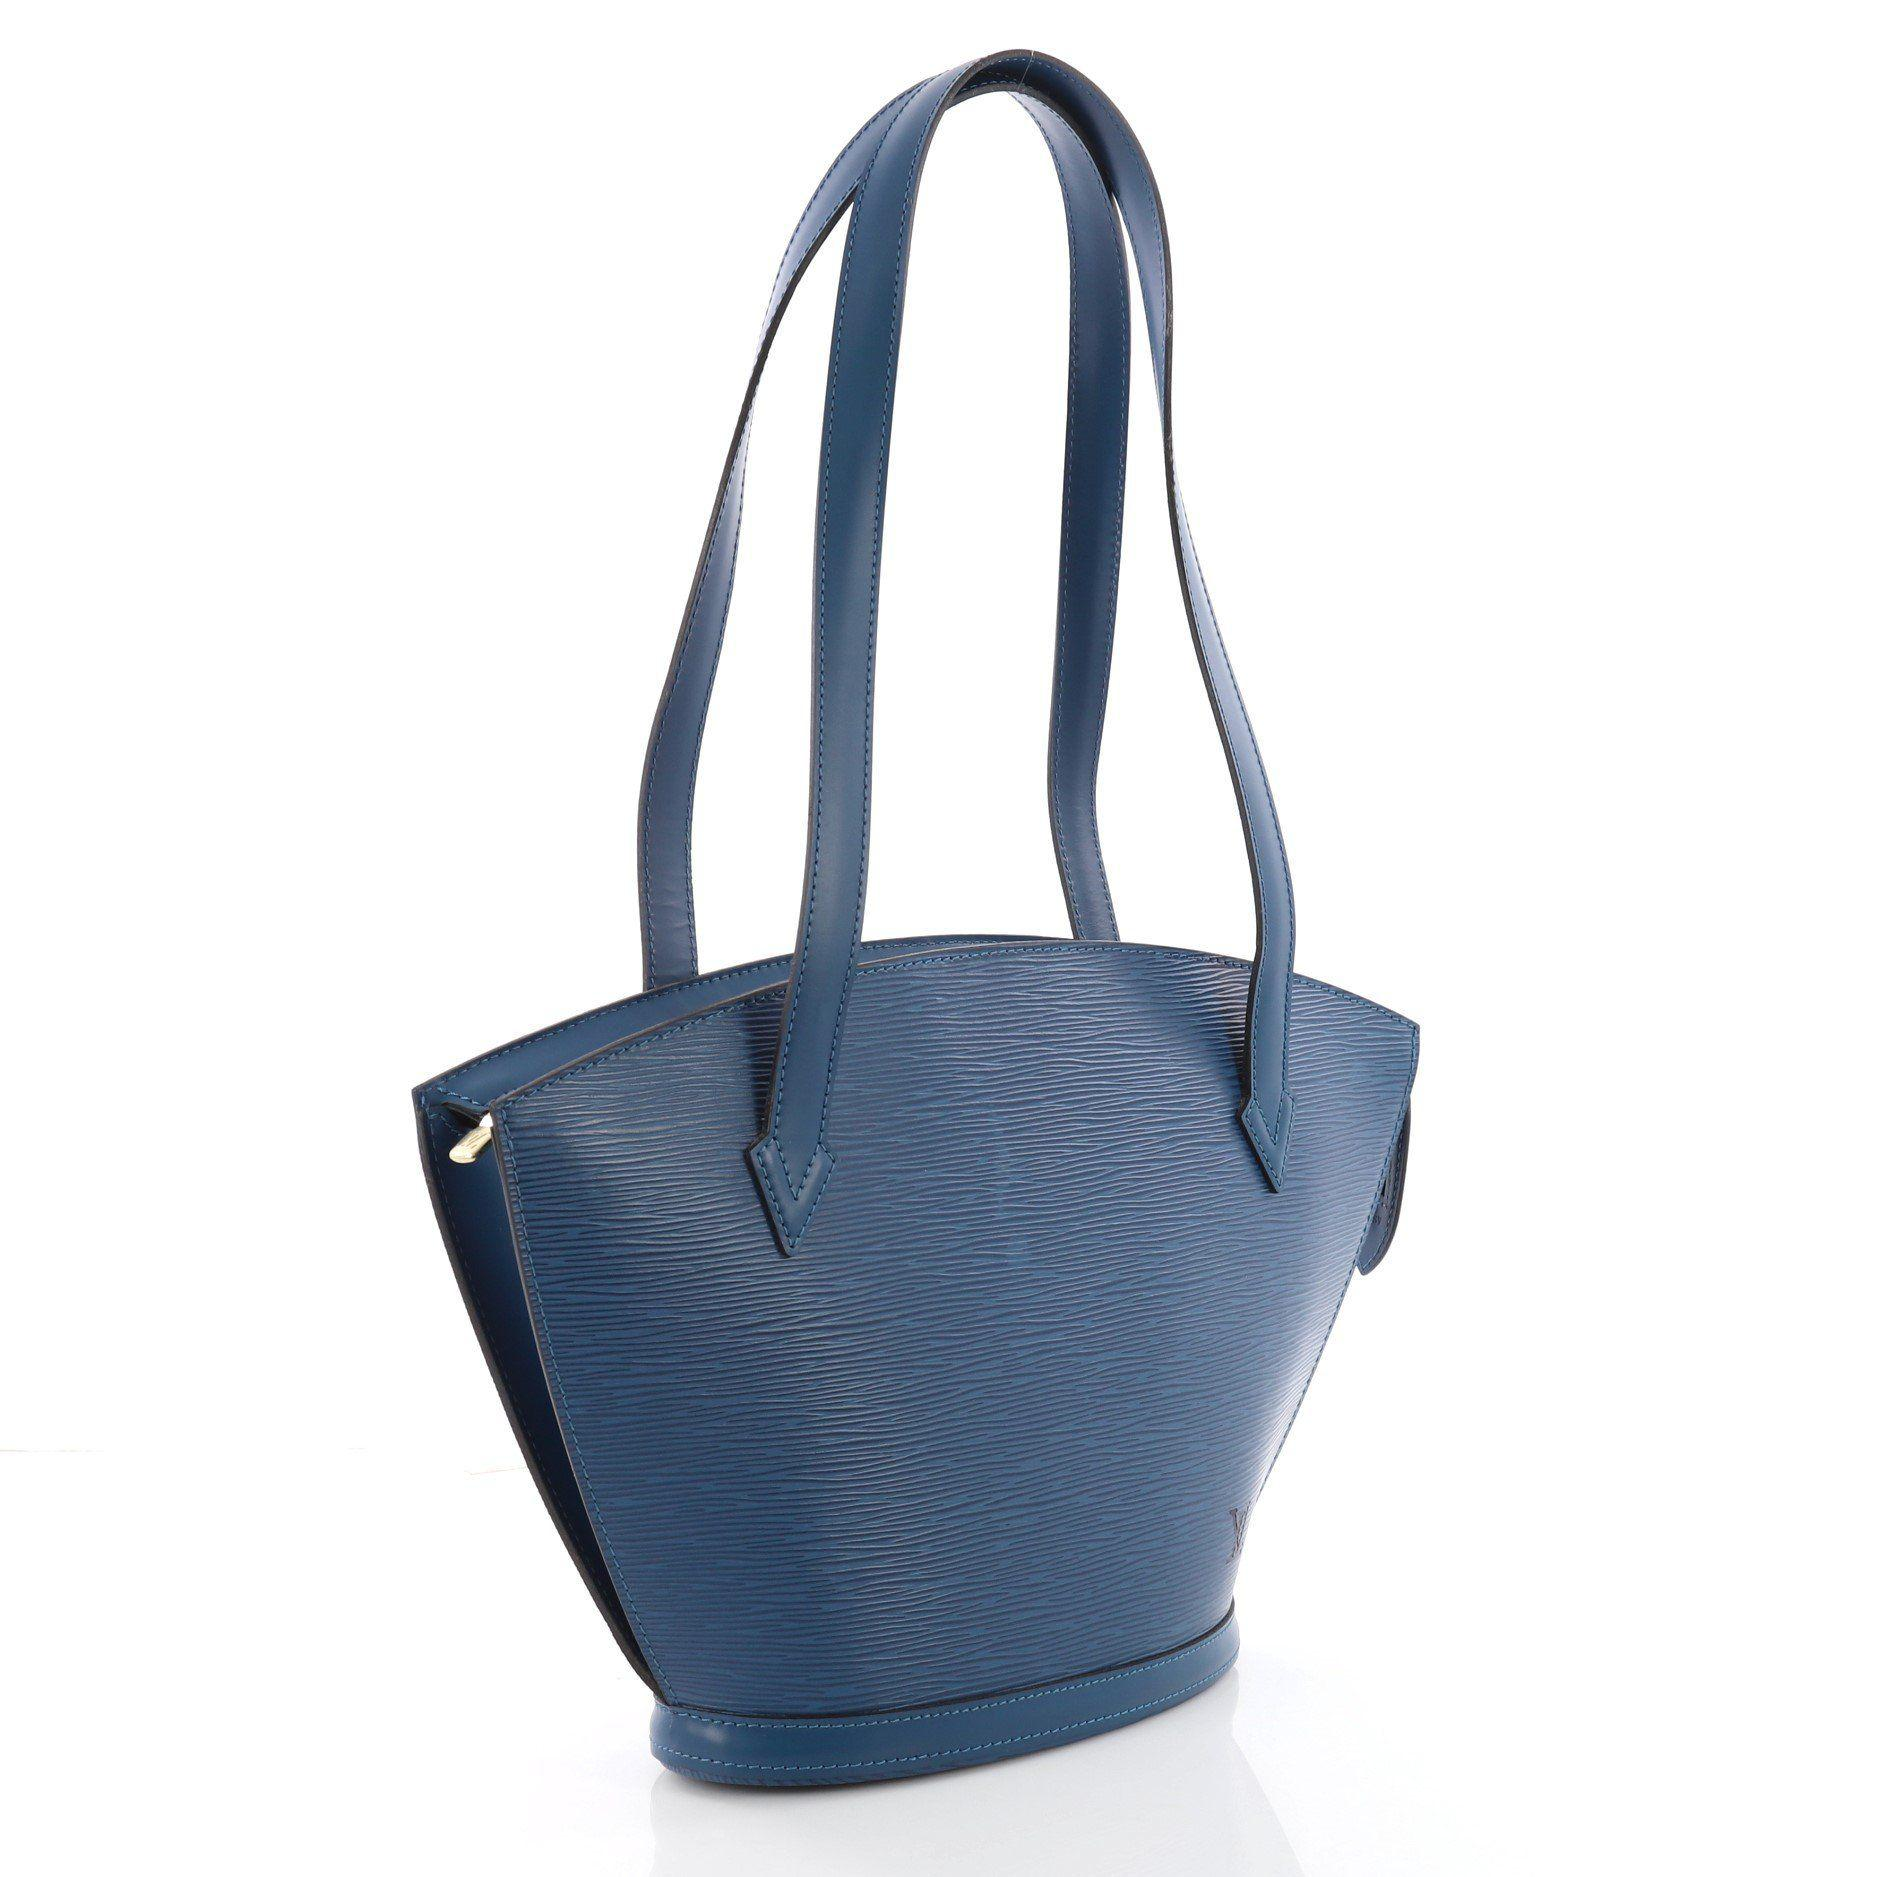 e04cb3f948c7 Louis Vuitton - Blue Saint Jacques Handbag Epi Leather Pm - Lyst. View  fullscreen